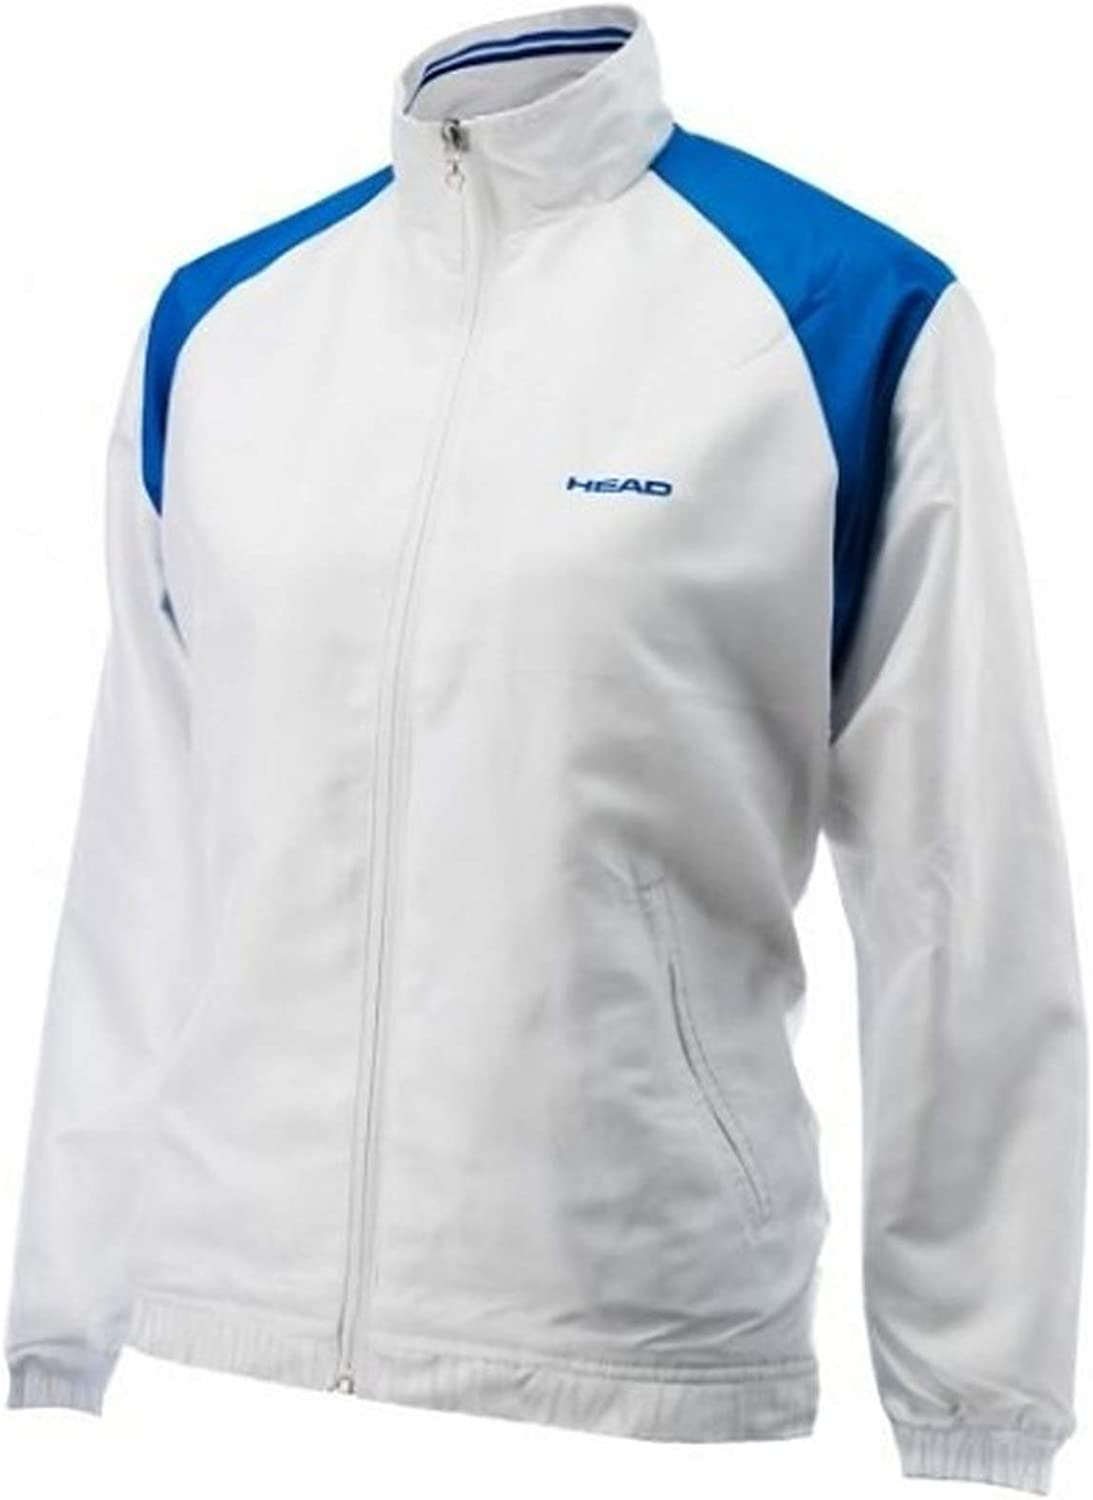 Bianco//Blu Head Ragazza Tennis Giacca Cooper JR all Season